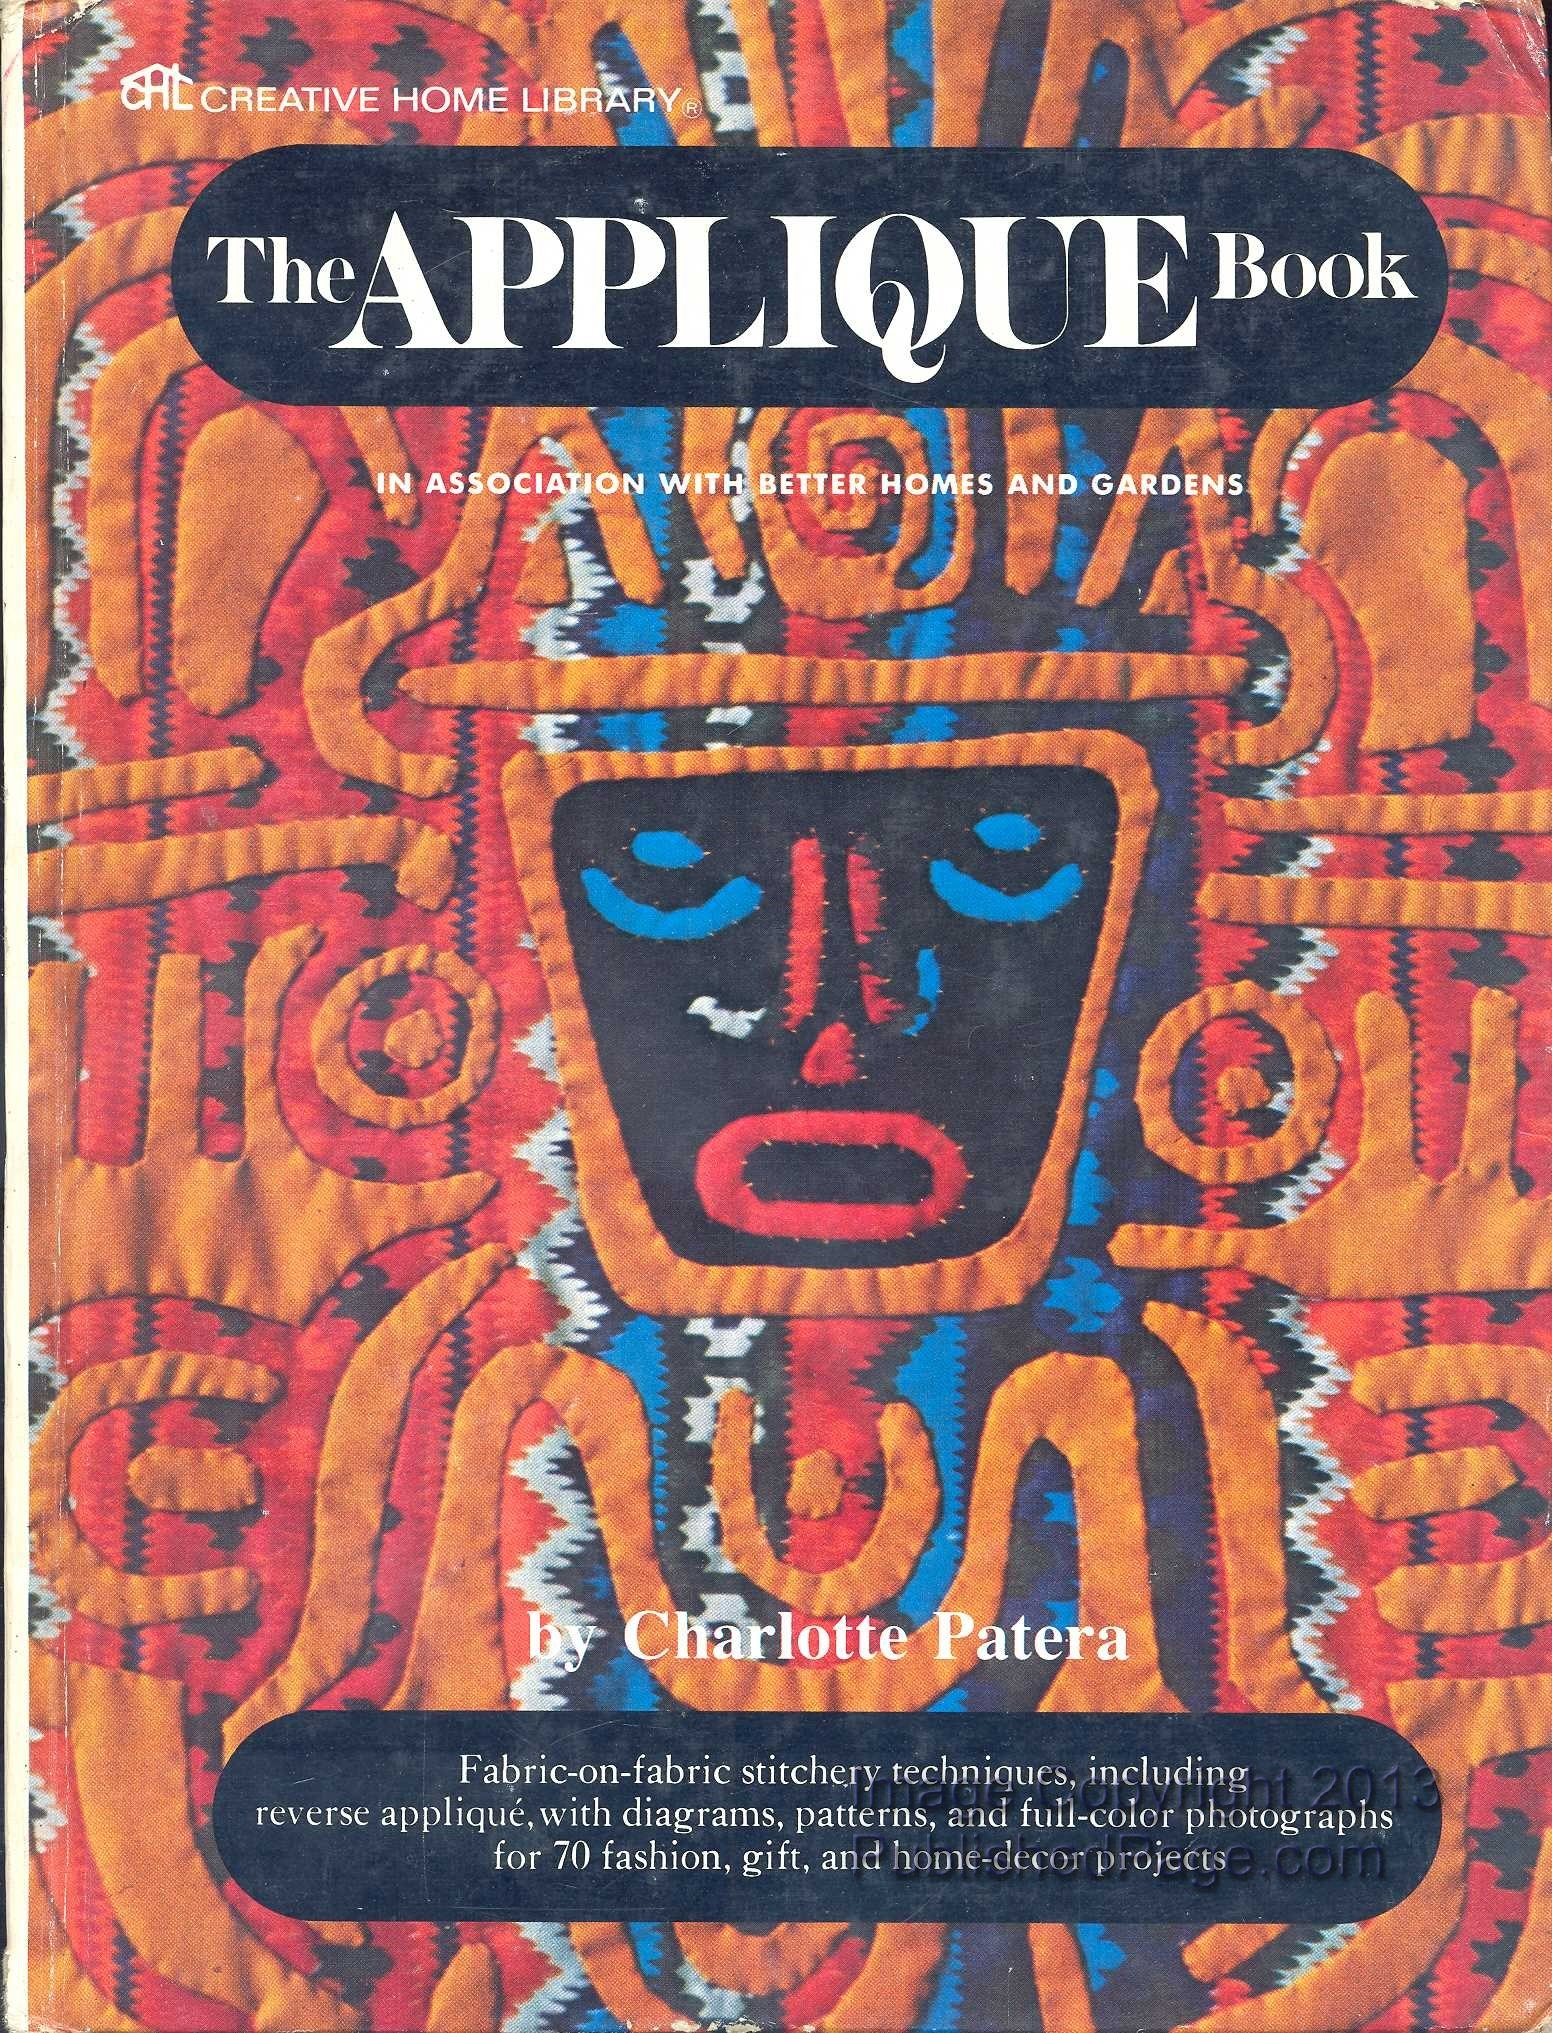 The applique book